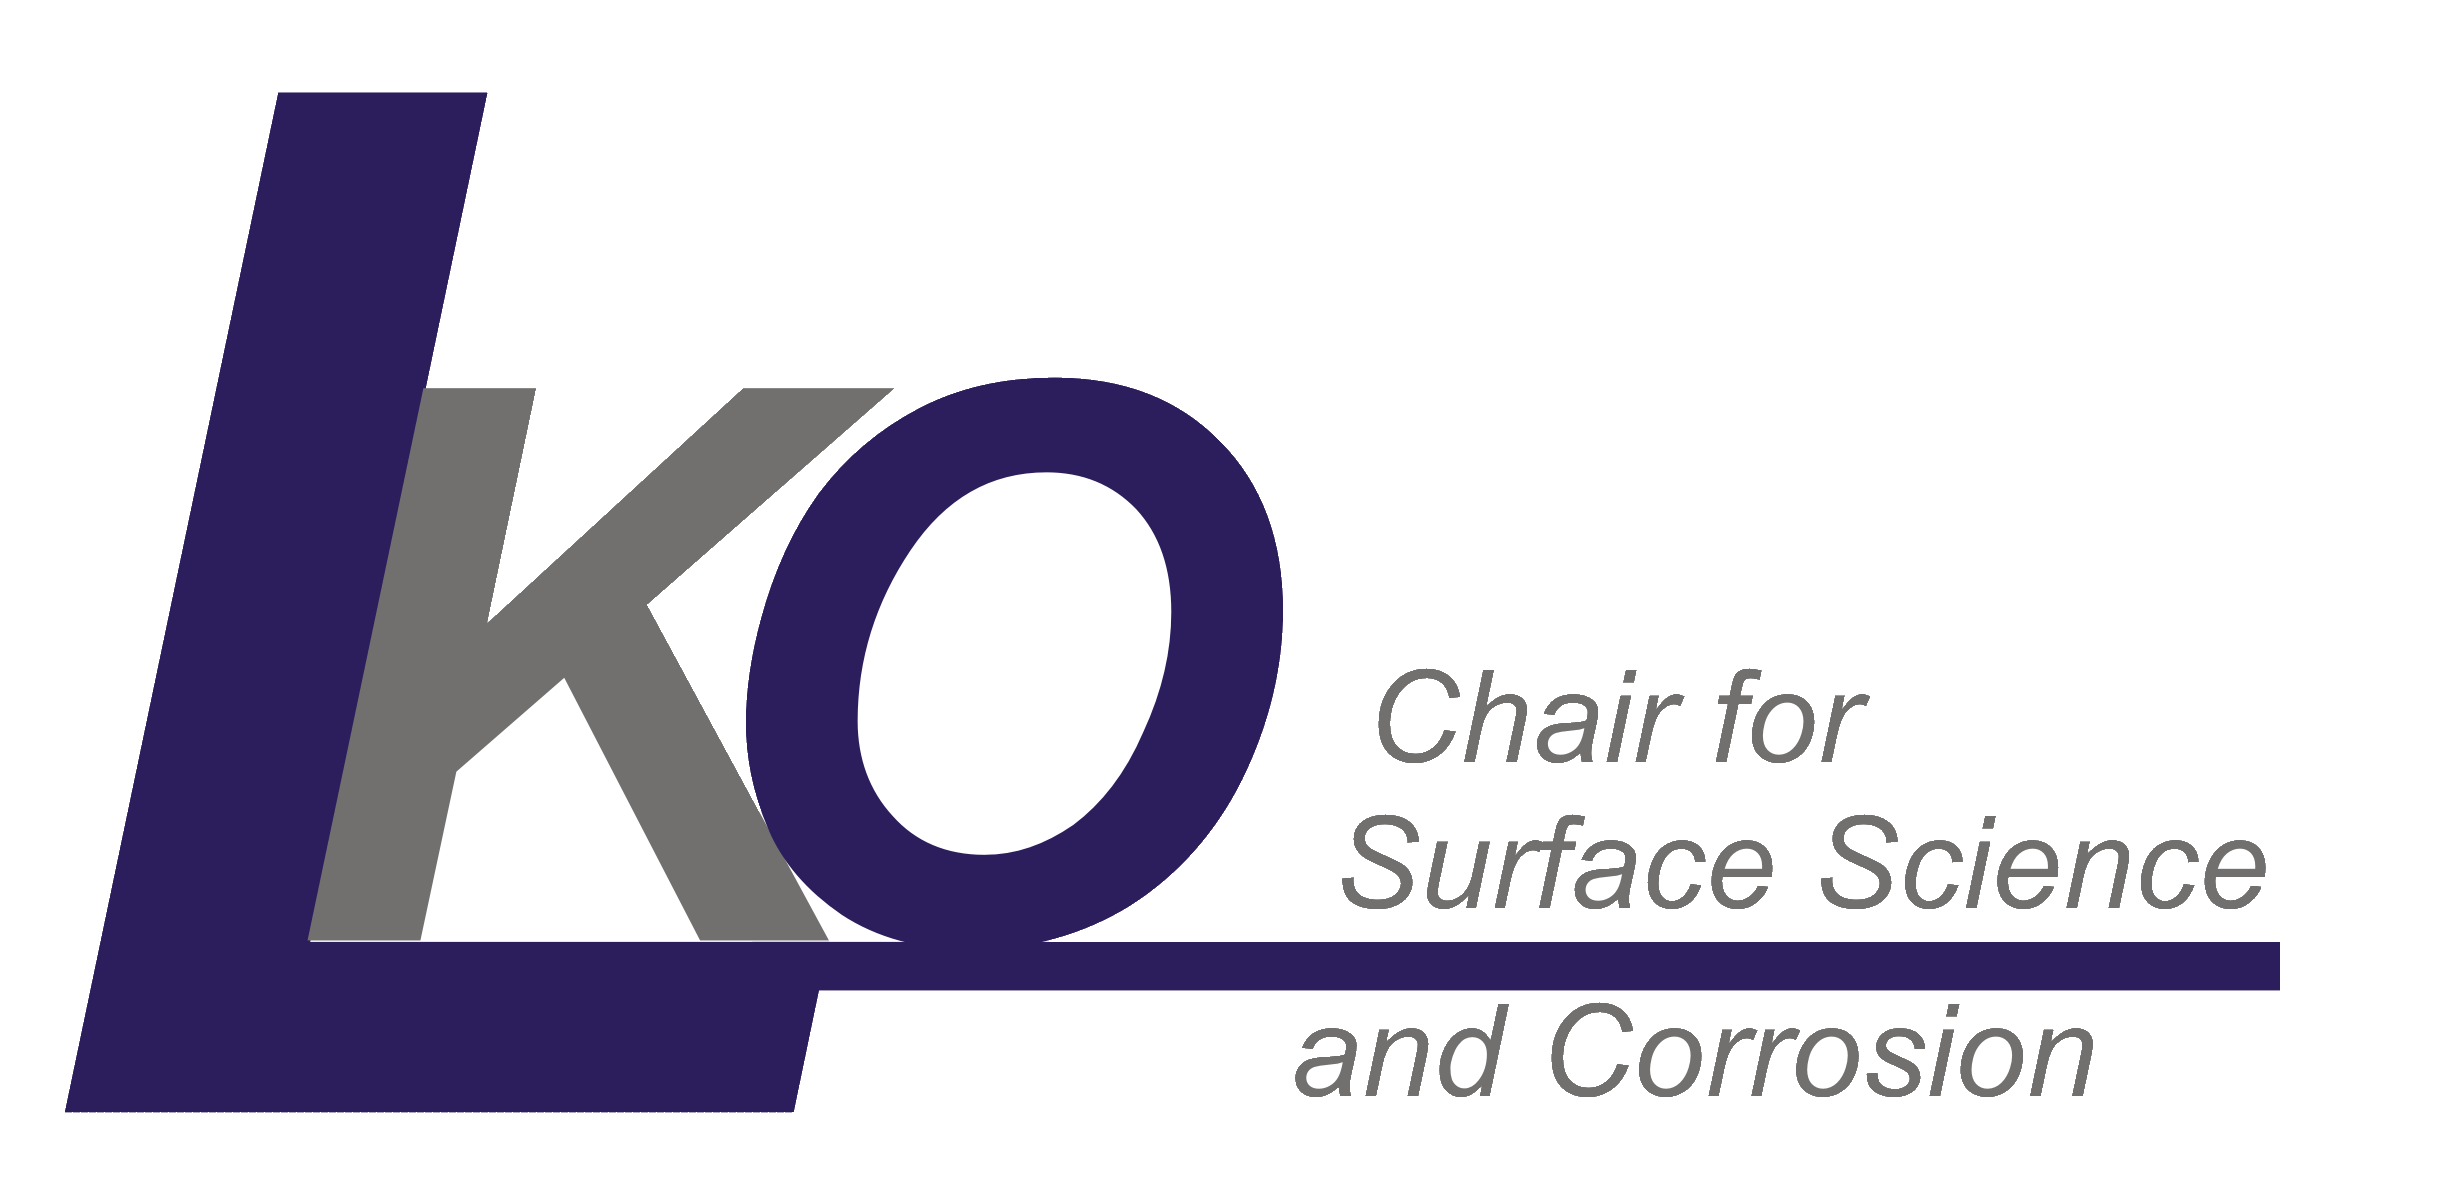 Chair for Surface Science and Corrosion